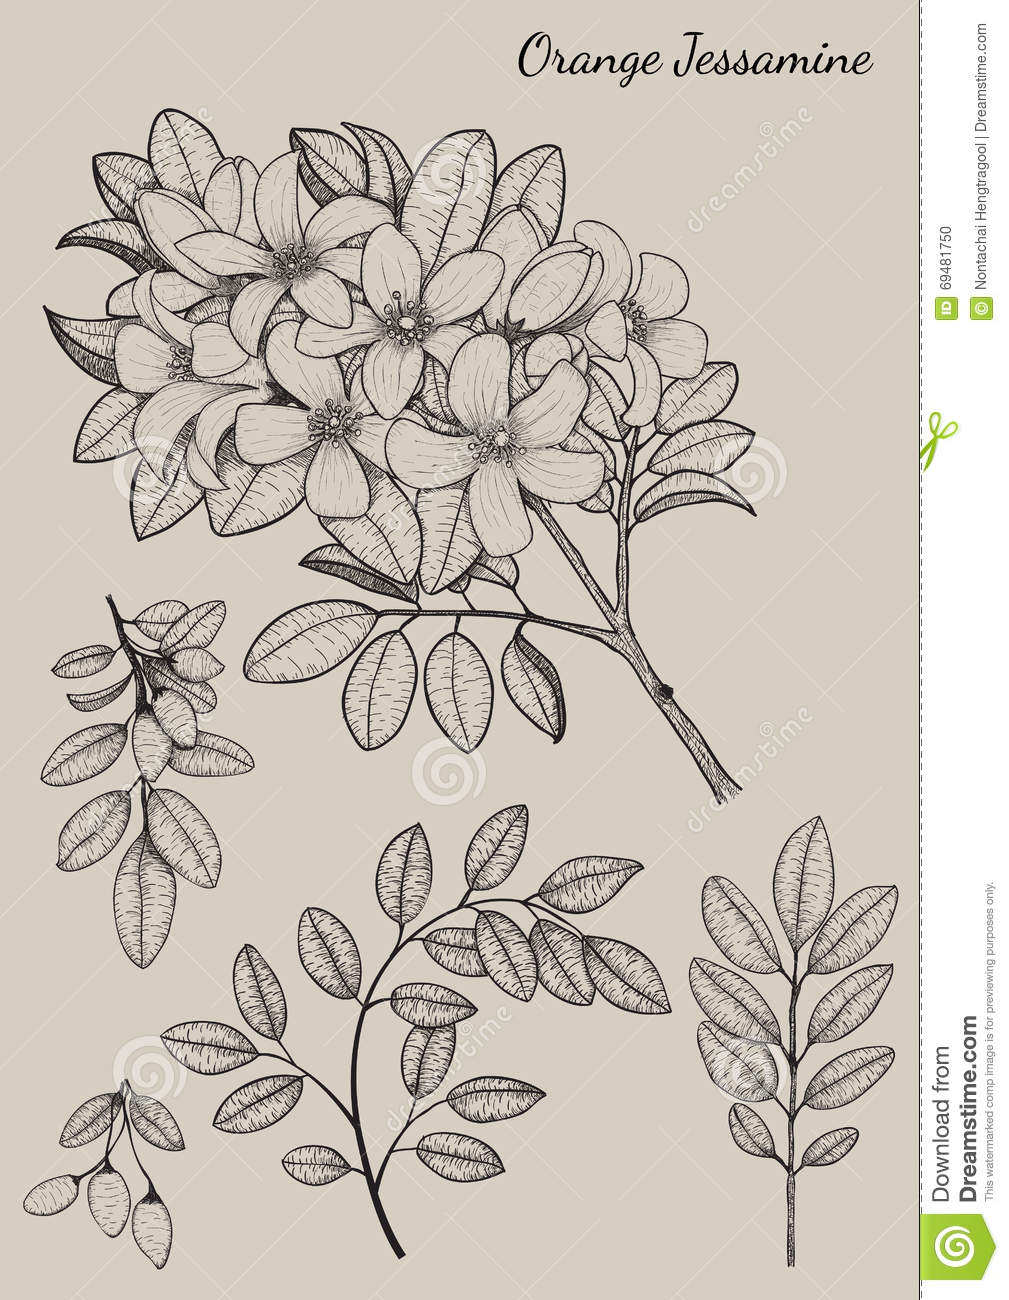 orange jessamine flower stock vector illustration of bloom 69481750